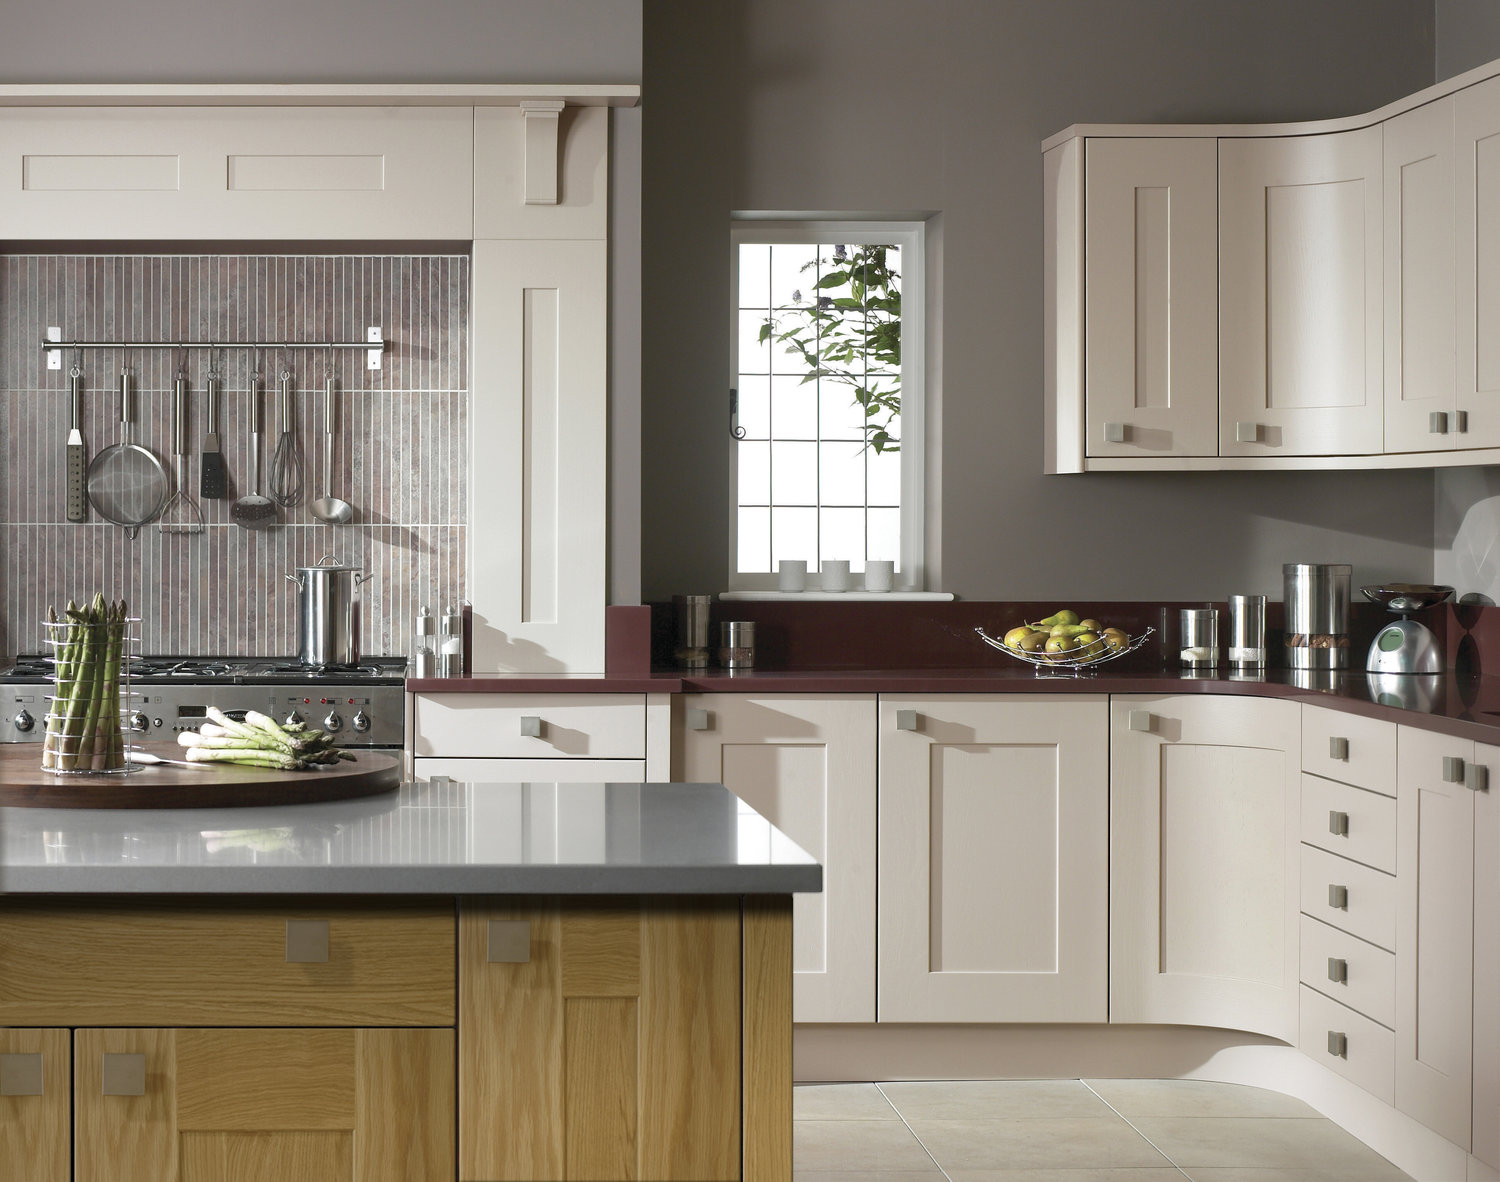 stainless steel handles co-ordinate through to the cooker and accessories…